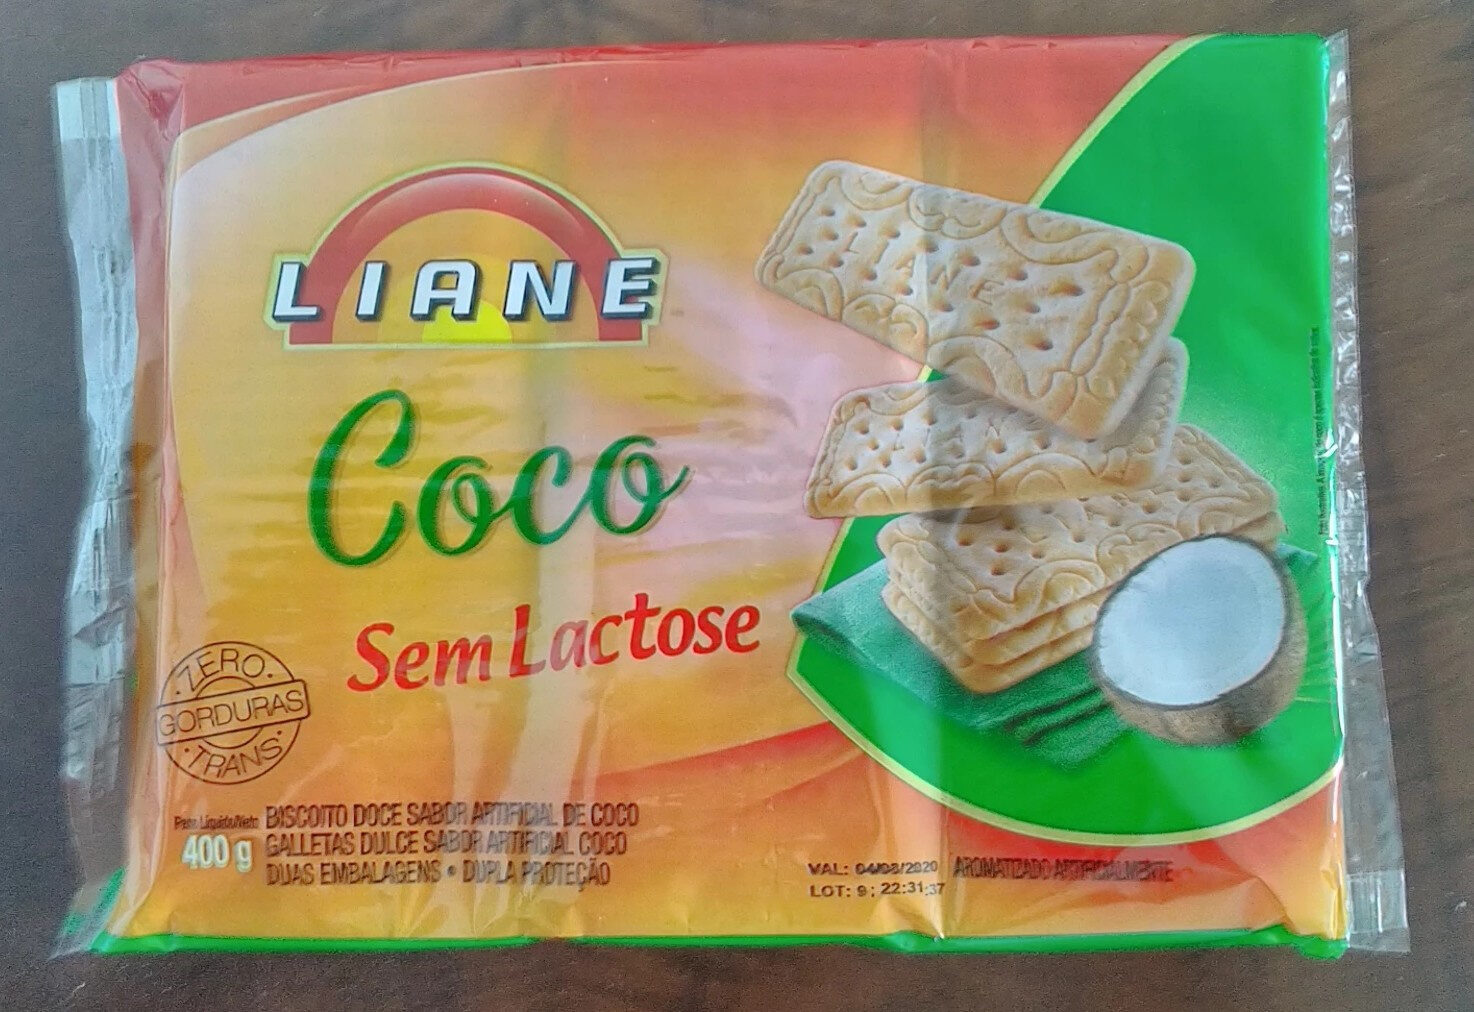 Biscoito doce sabor artificial coco - Product - pt